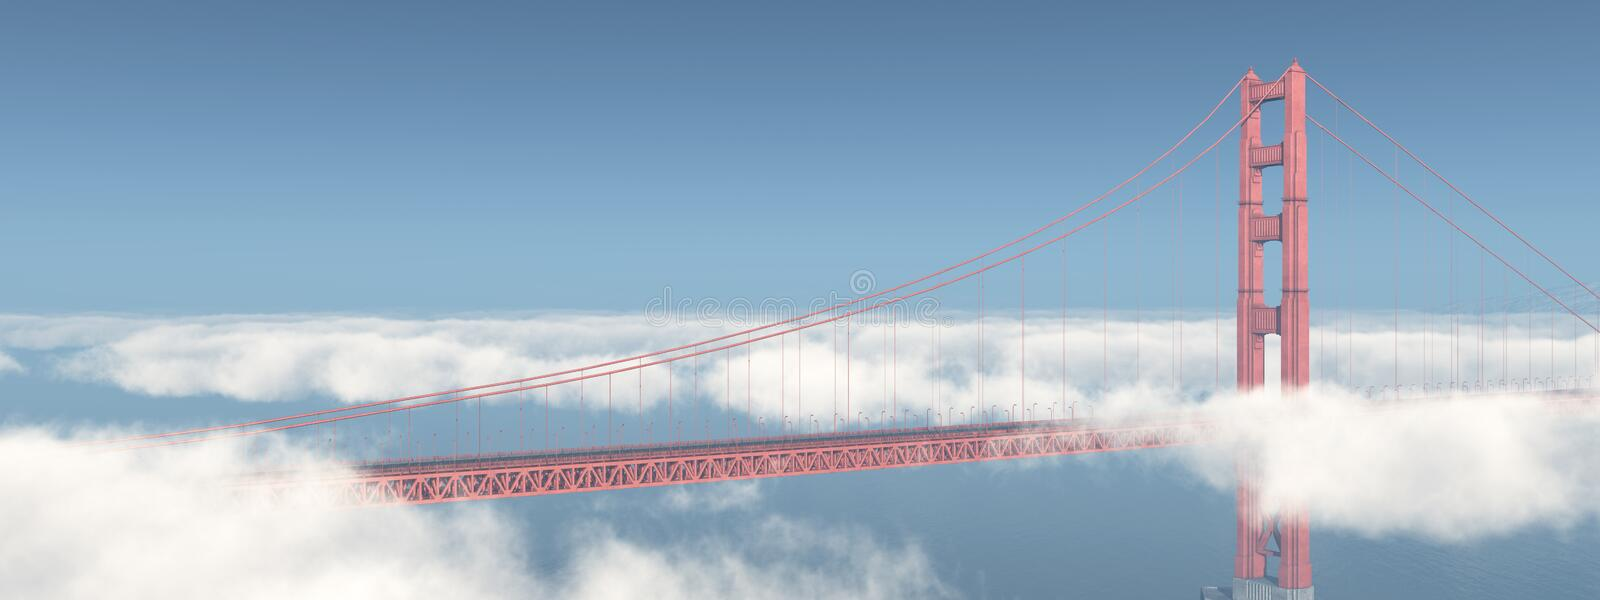 Golden Gate Bridge in San Francisco. Computer generated 3D illustration with the Golden Gate Bridge in San Francisco stock illustration